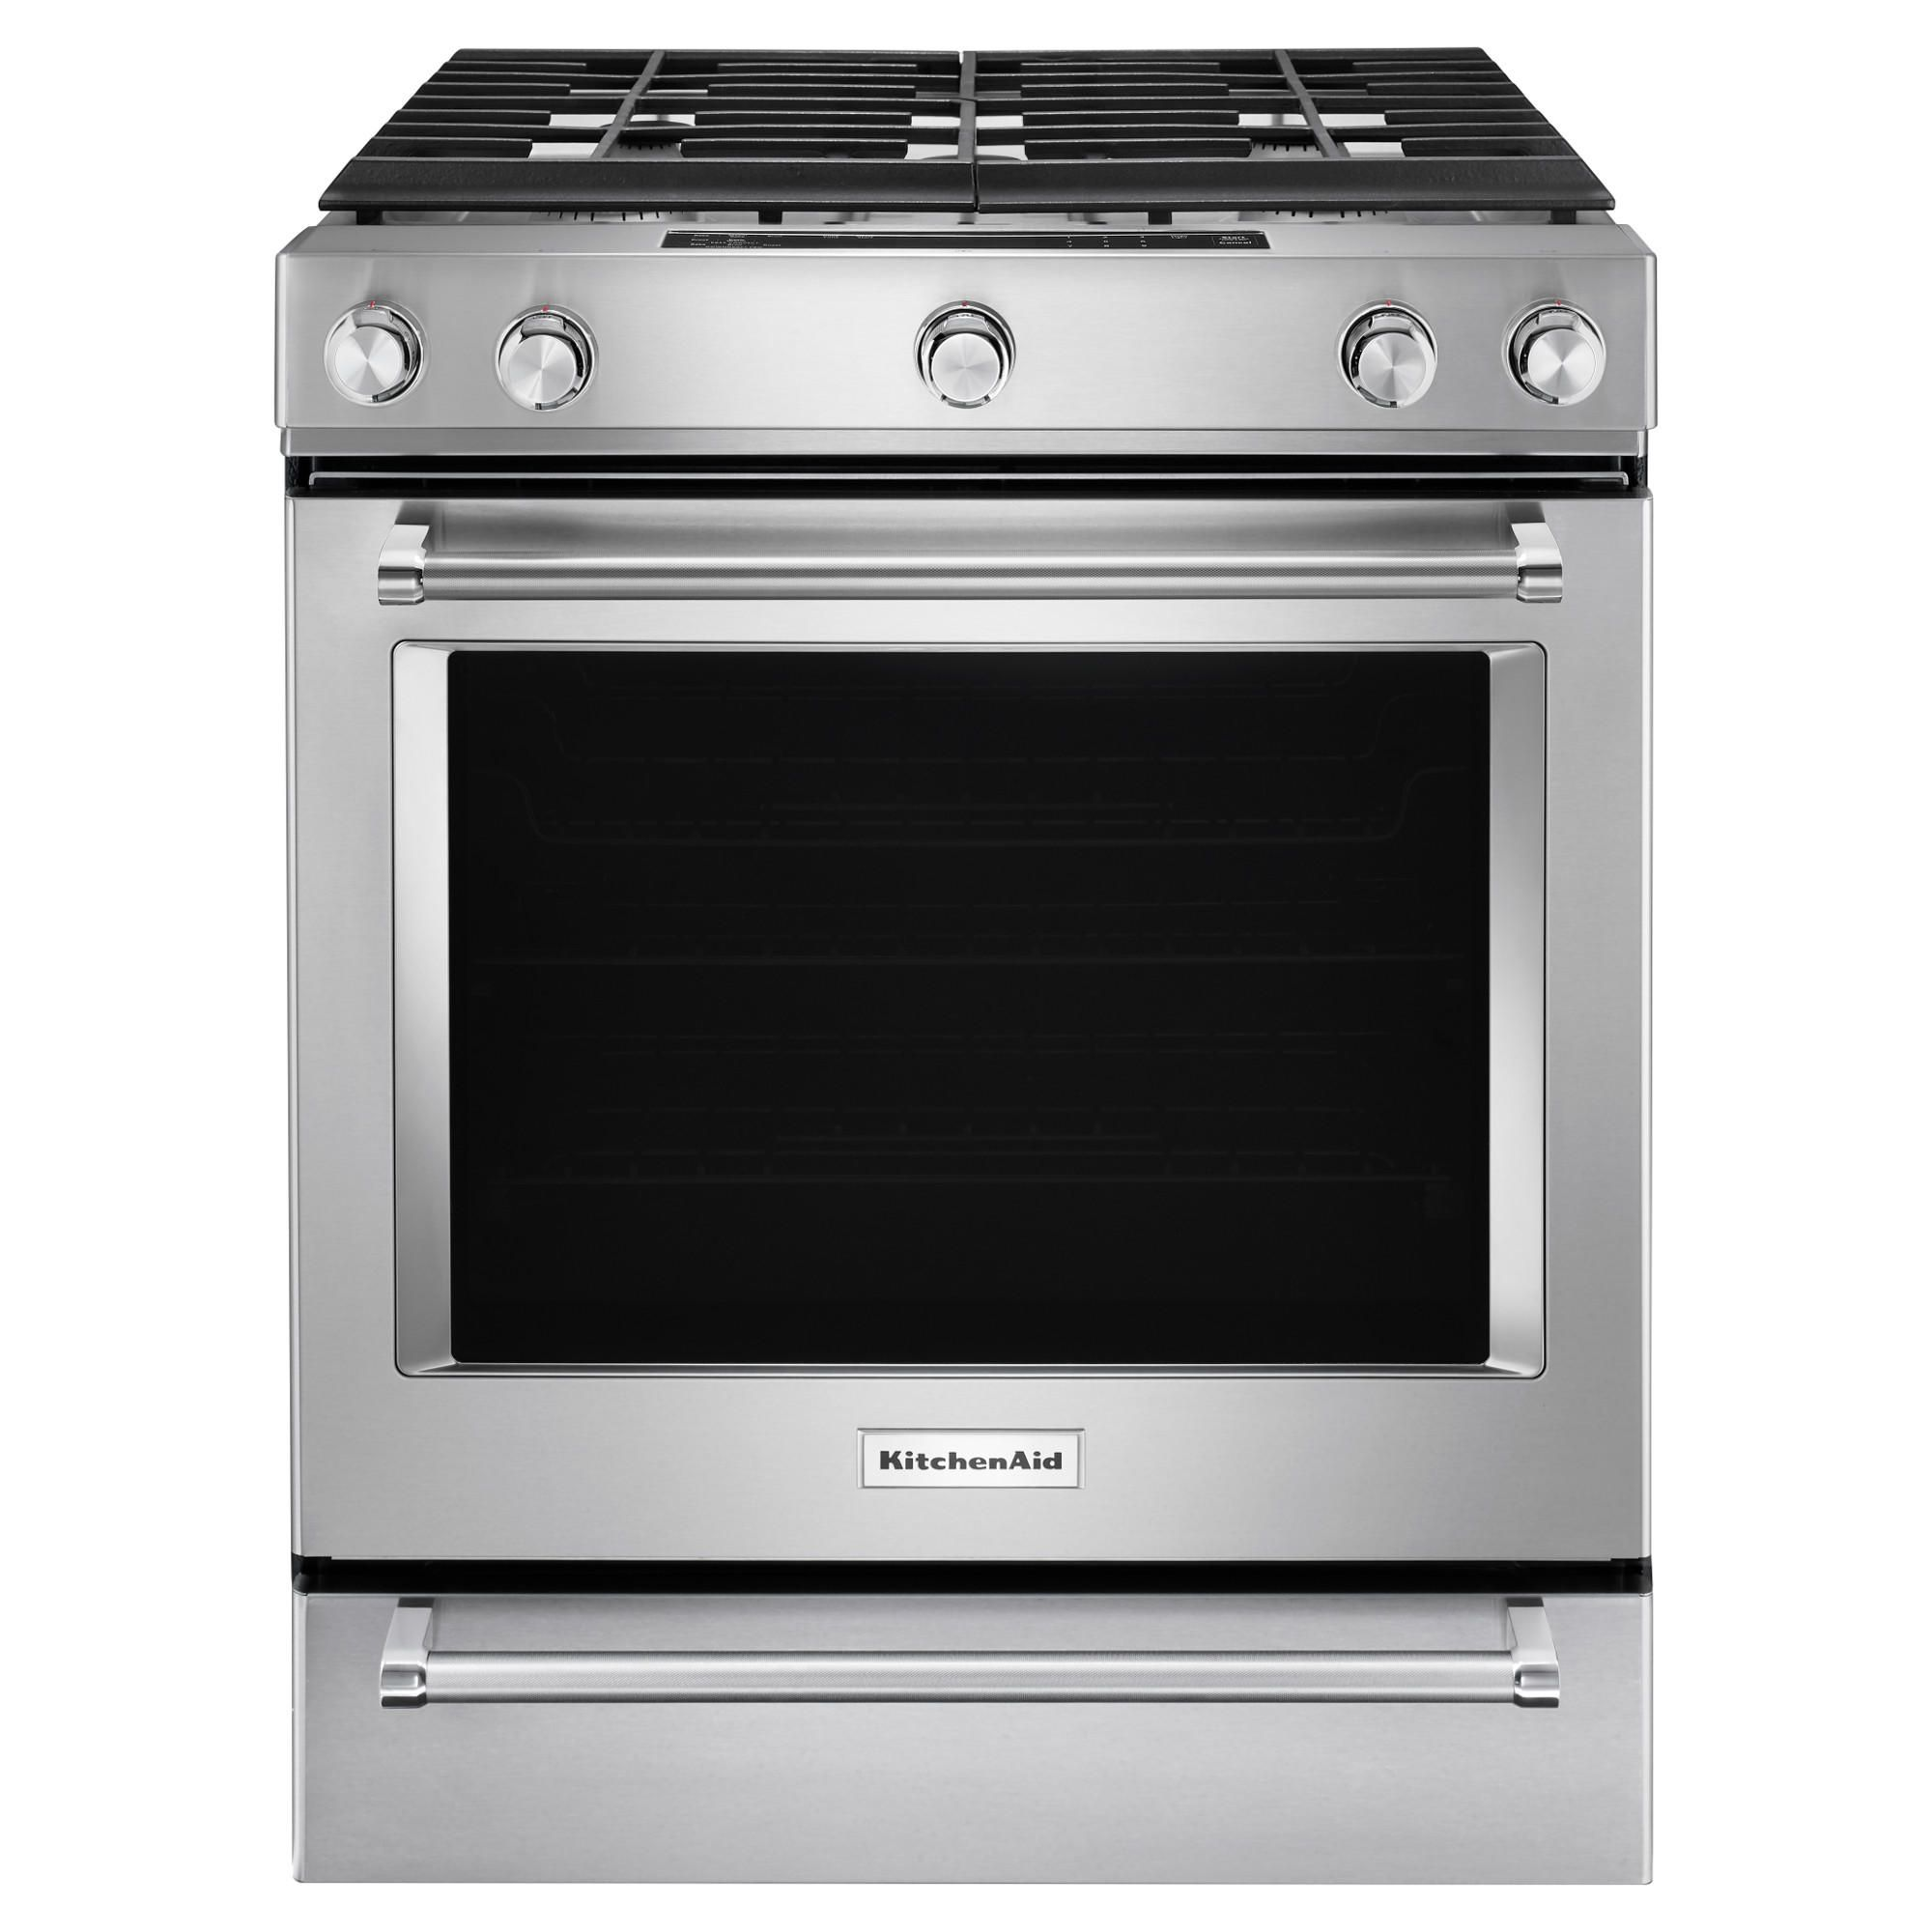 Kitchenaid 174 30 Inch 5 Burner Gas Convection Slide In Range